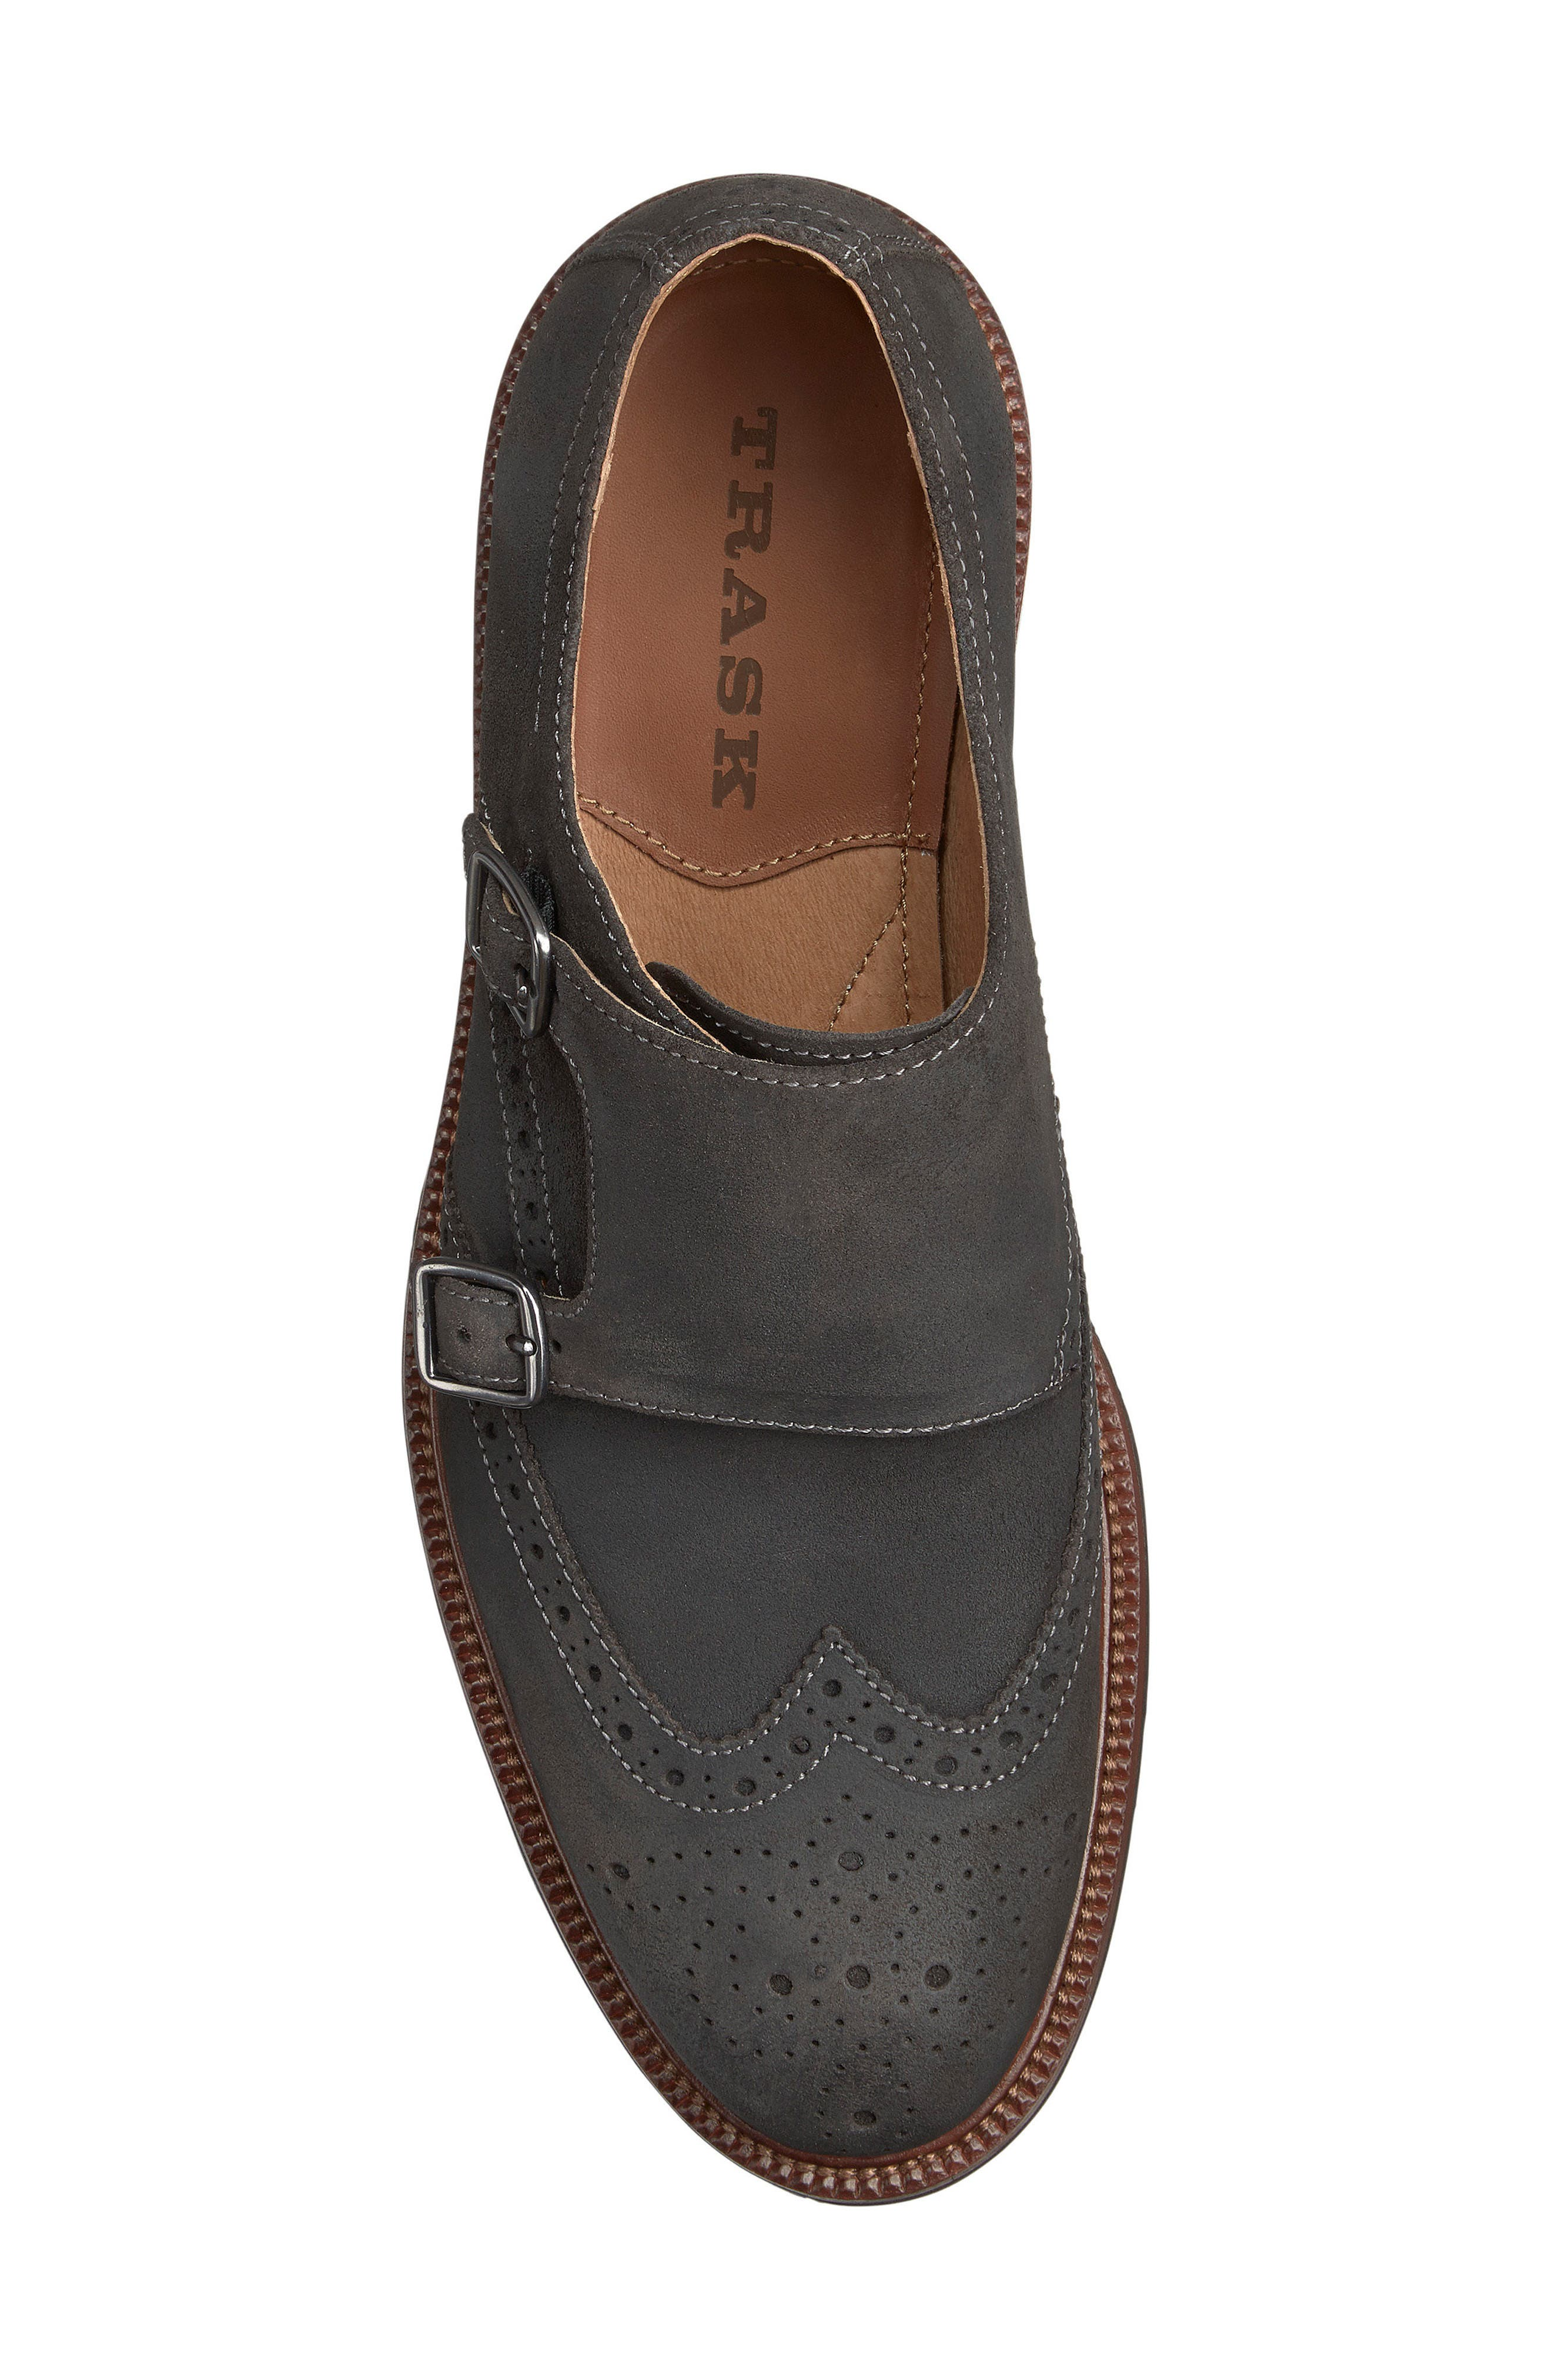 TRASK, Leland Double Monk Strap Shoe, Alternate thumbnail 3, color, GRAY WAXED SUEDE